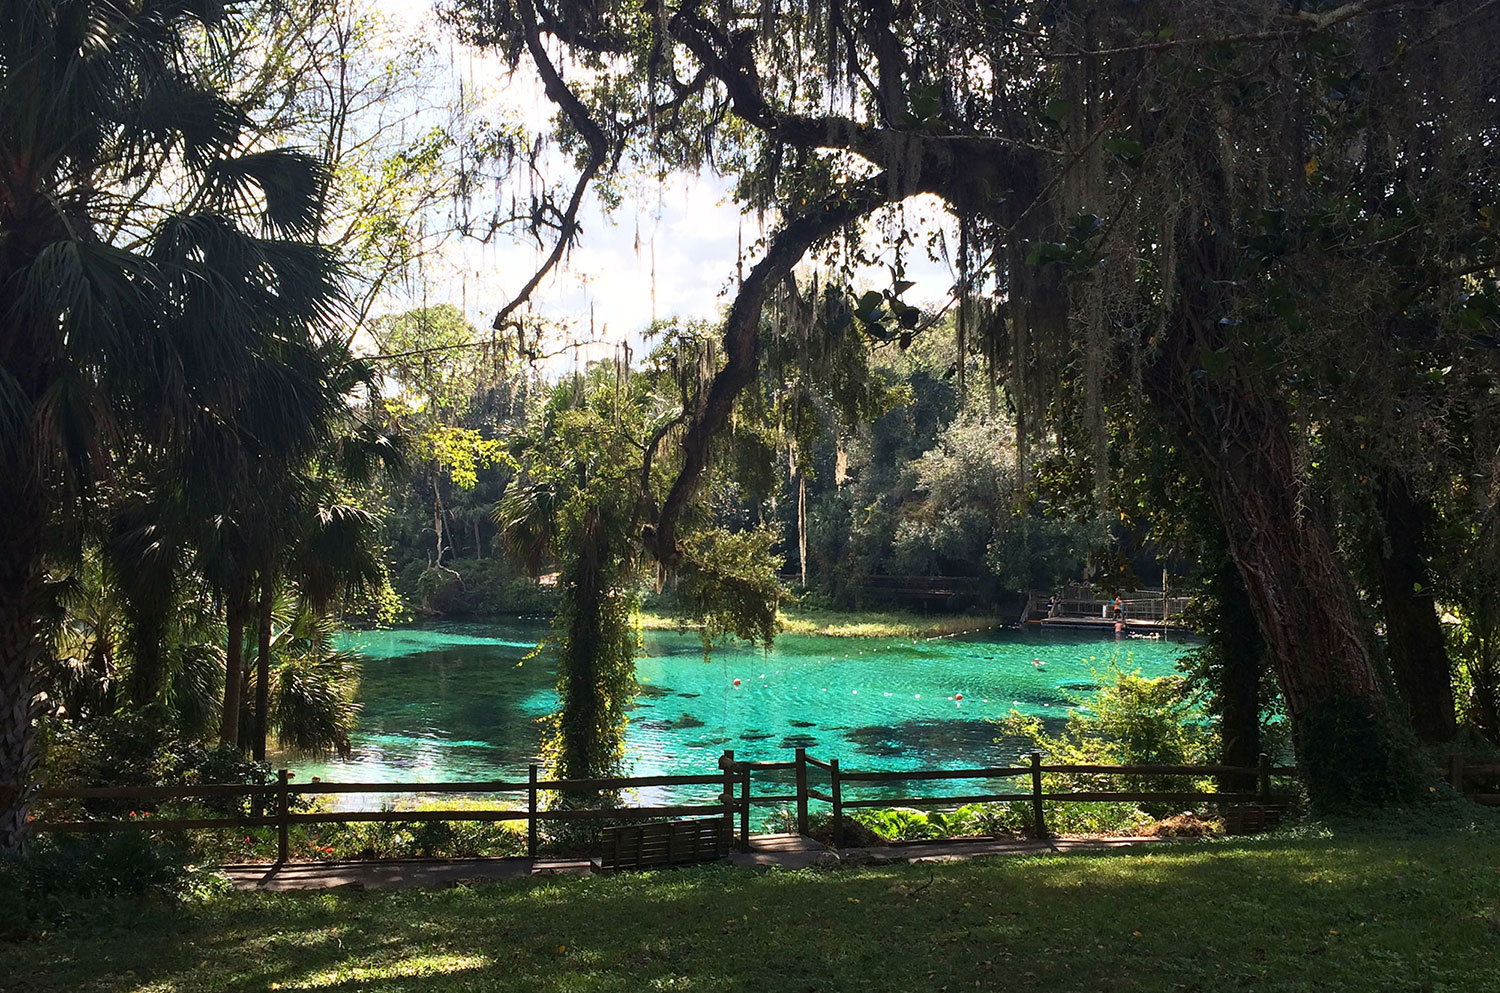 A view of clear blue water at Rainbow Springs State Park in Dunnellon Florida